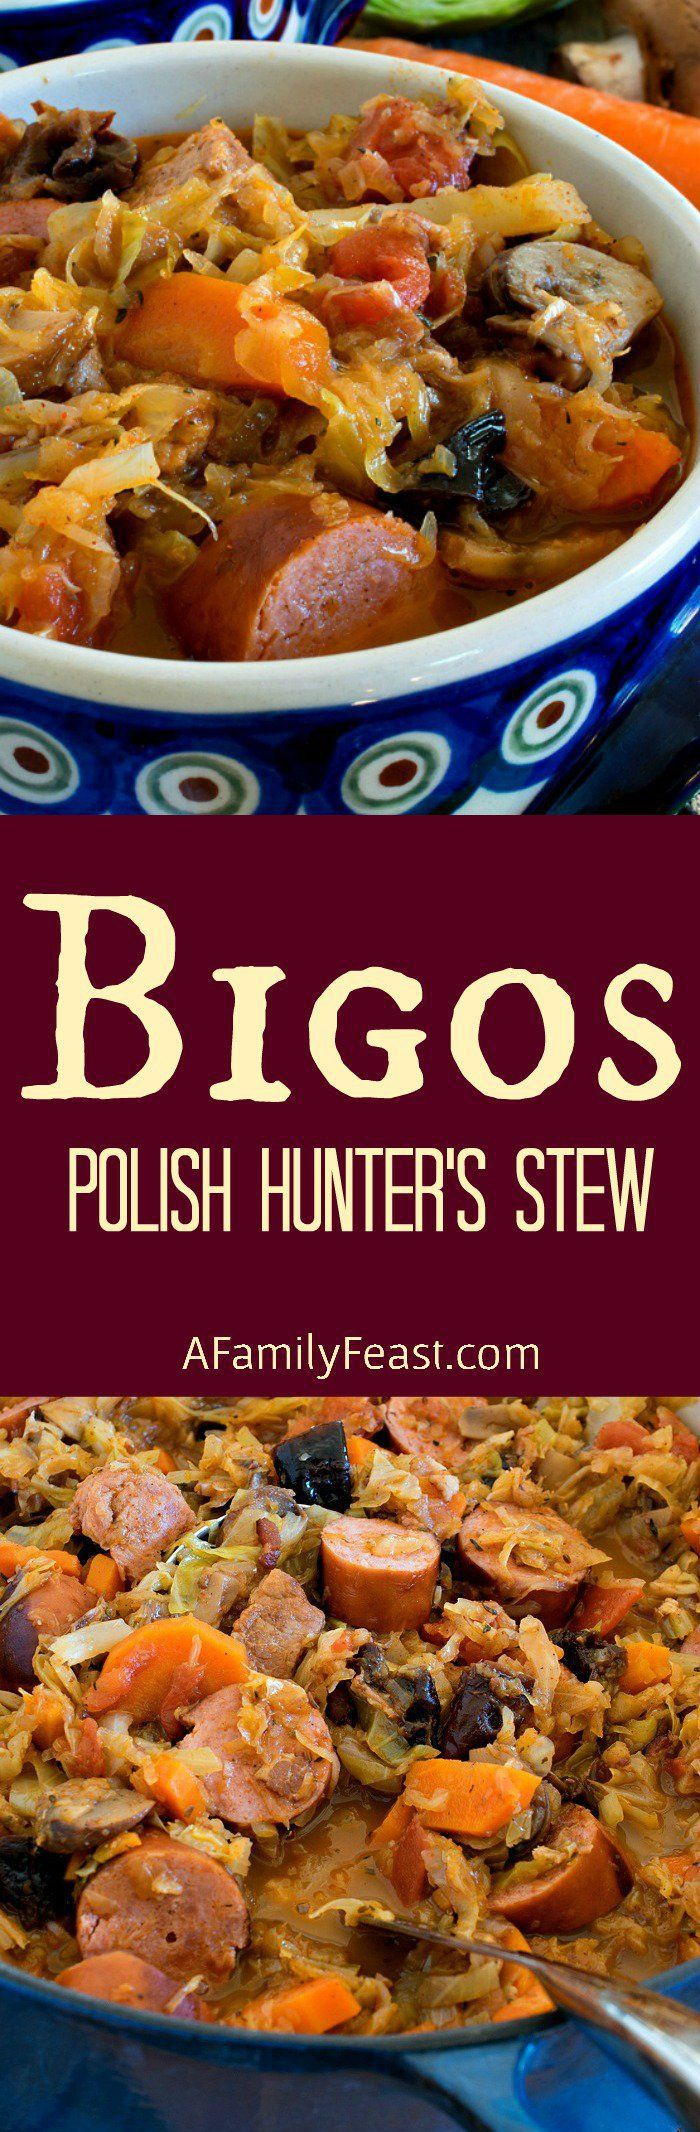 Bigos (also known as Polish Hunter's Stew) is a hearty delicious dish made with meat, cabbage, sauerkraut and vegetables. (beef broth soup recipes healthy) #beefbrothrecipeshealthy